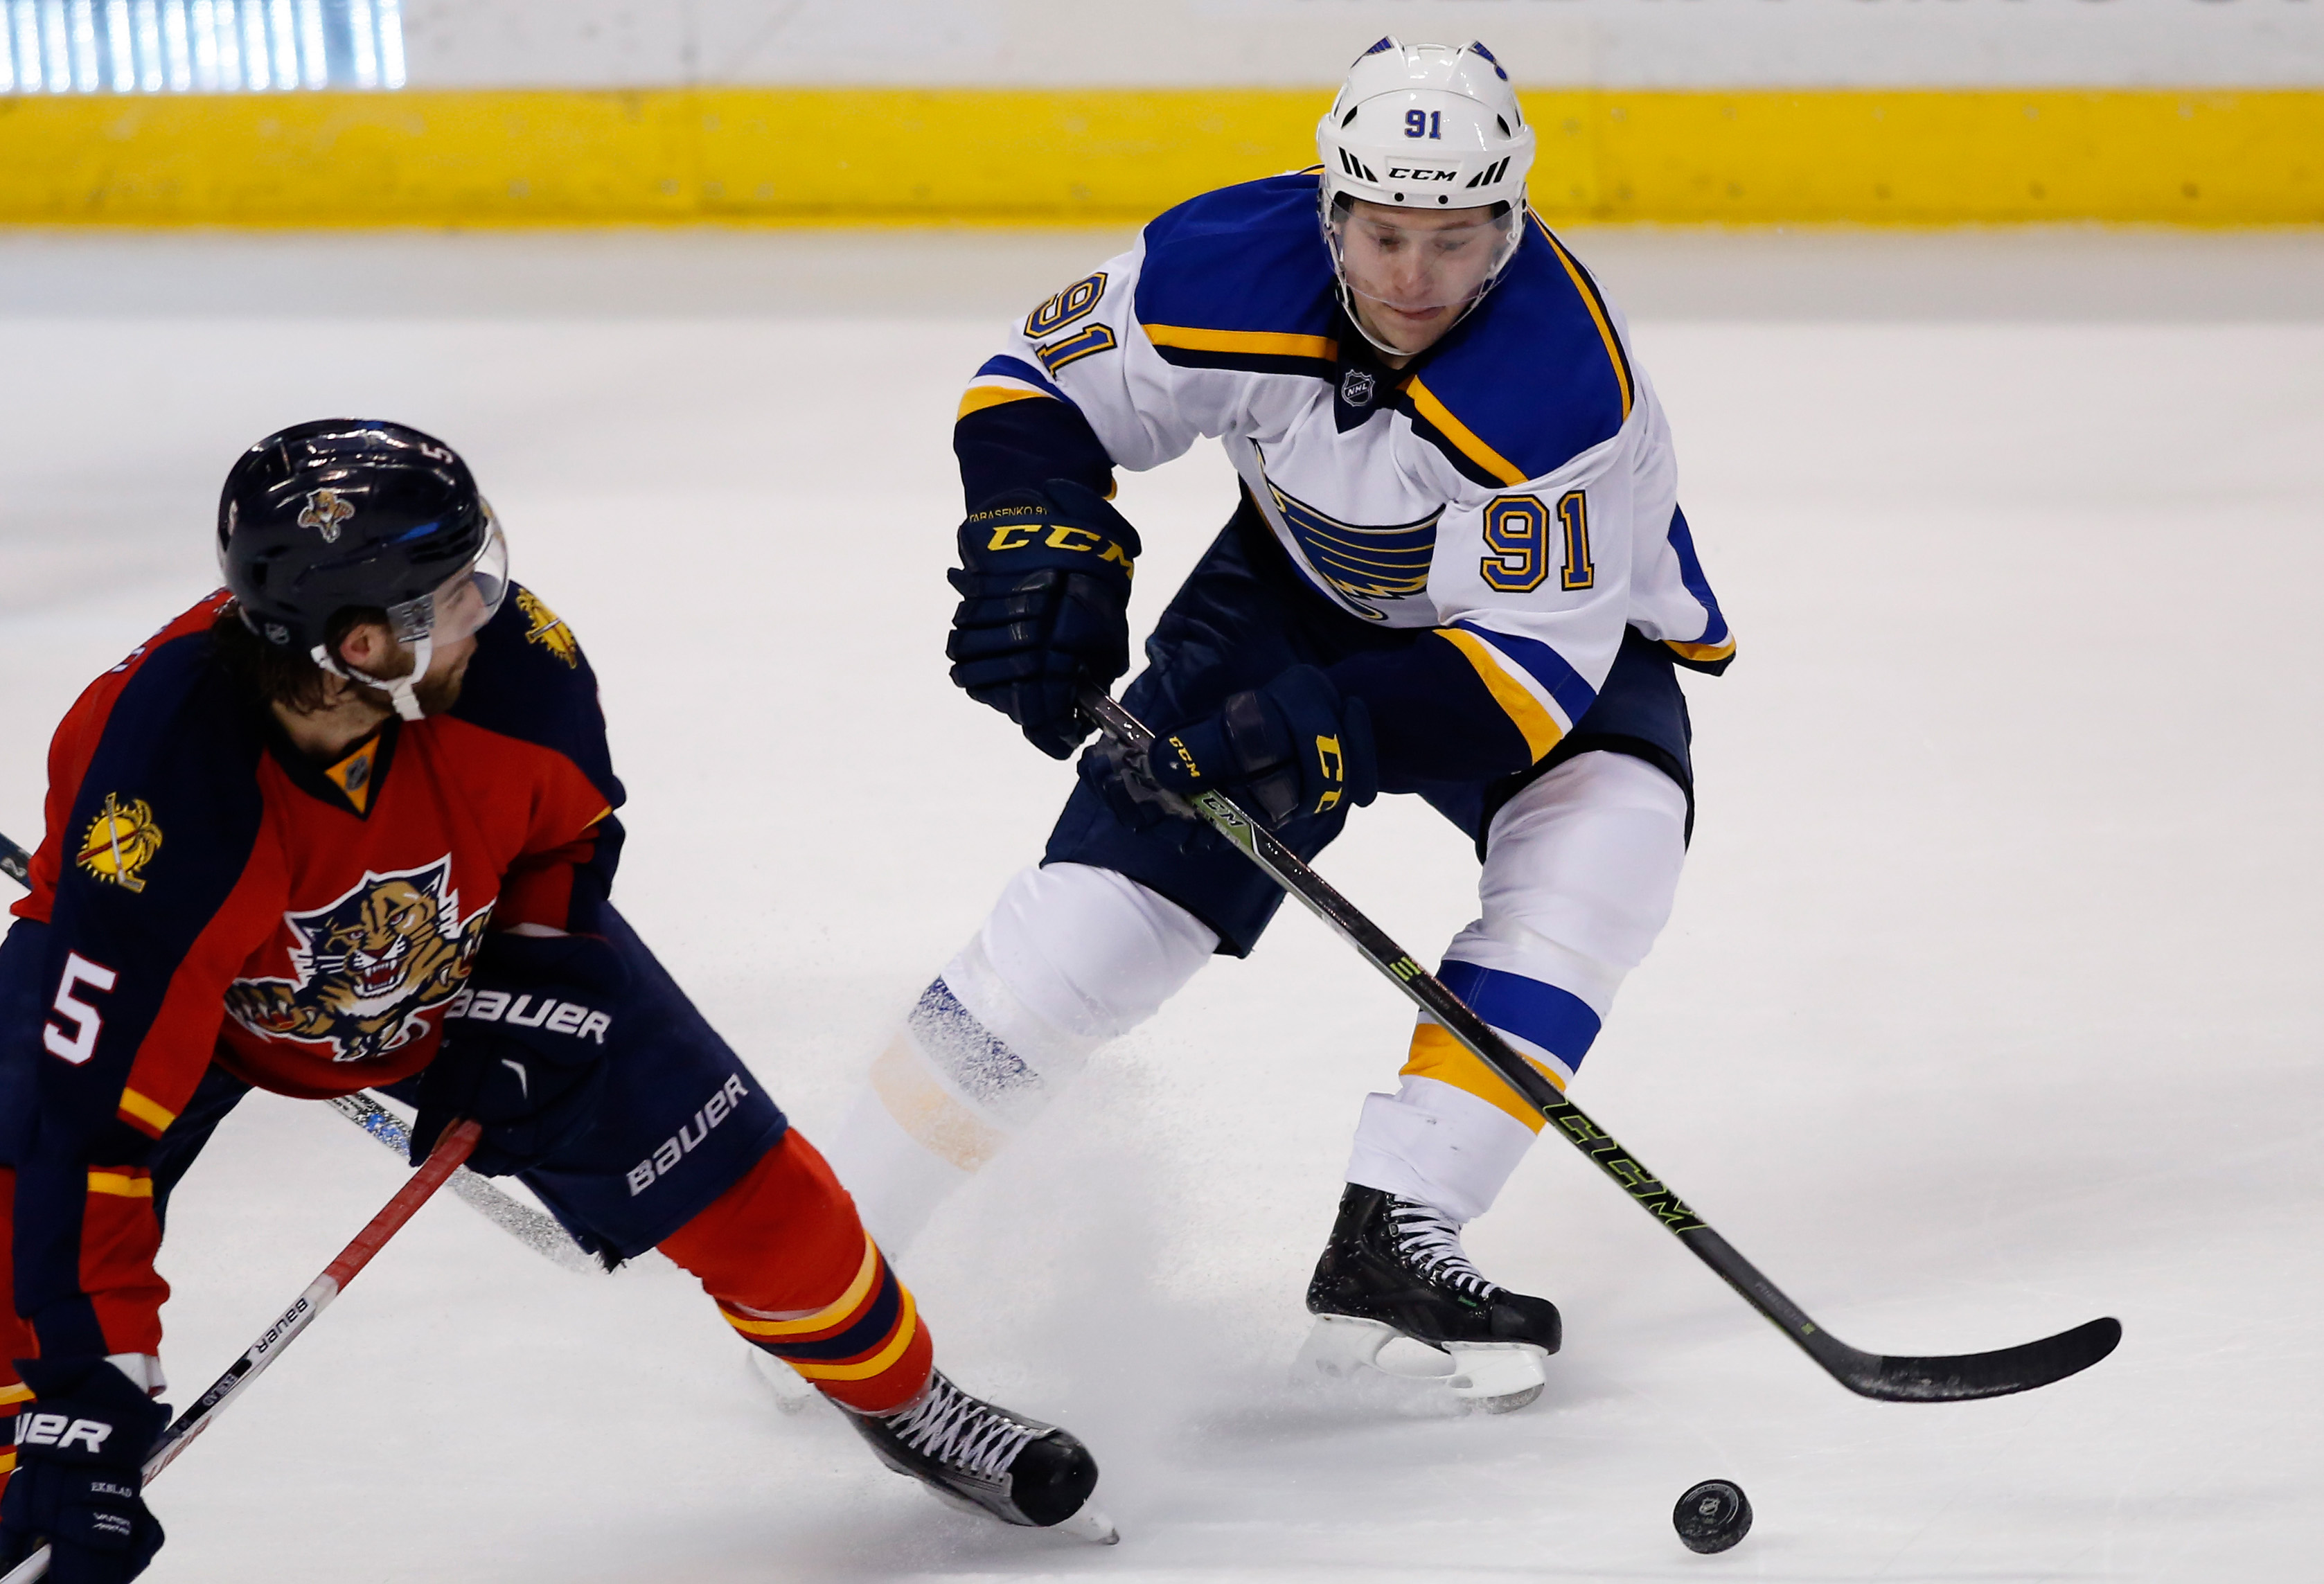 9120747-nhl-st.-louis-blues-at-florida-panthers